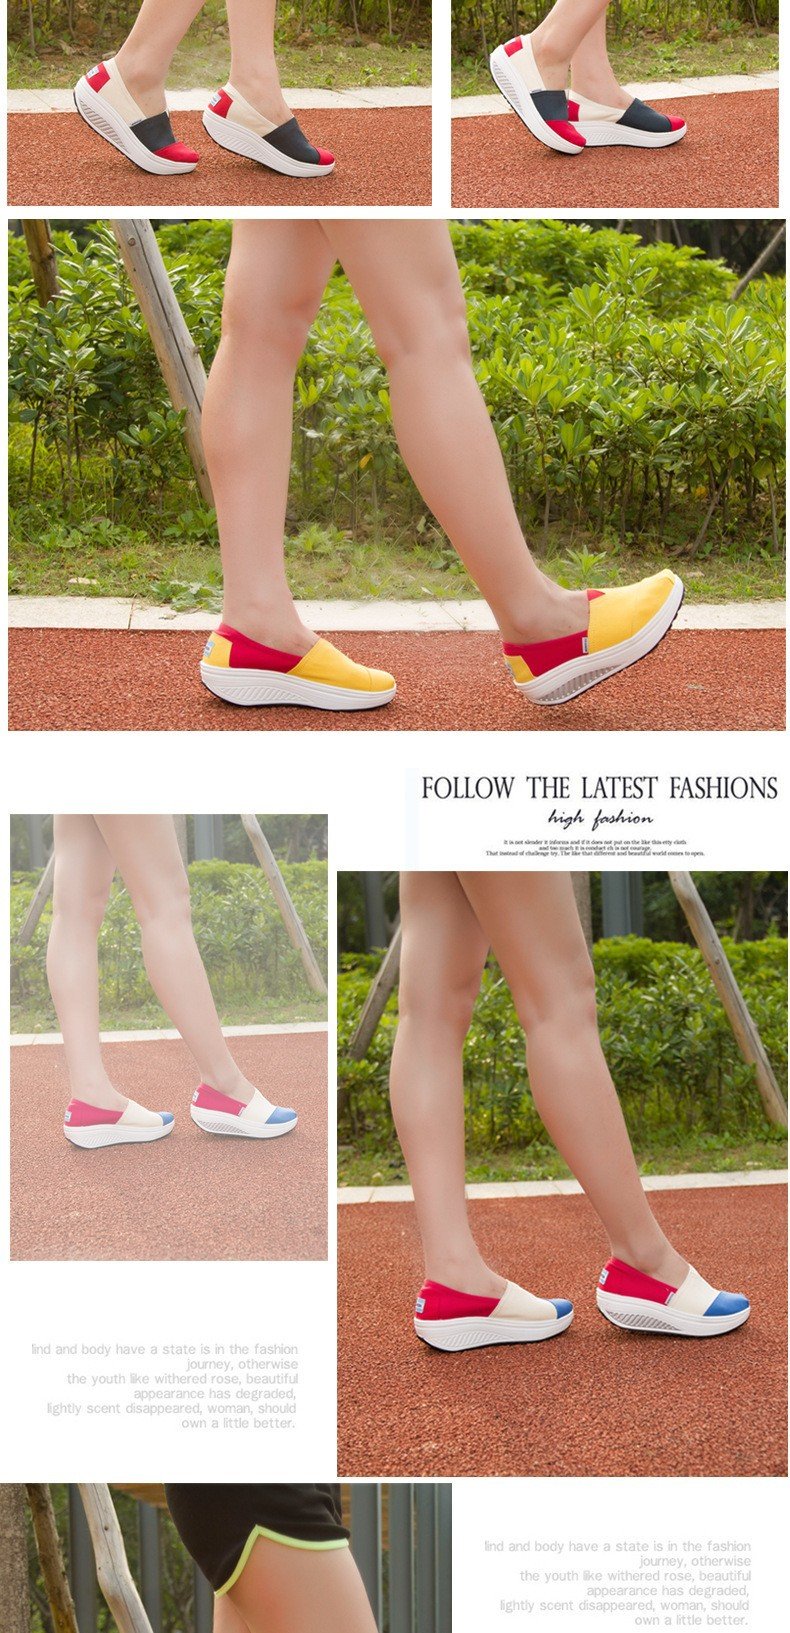 2016 Swing Fashion Casual Shoes Woman High Quality Canvas Shoes Women Summer Walking Shoes Women's Platform Shoes